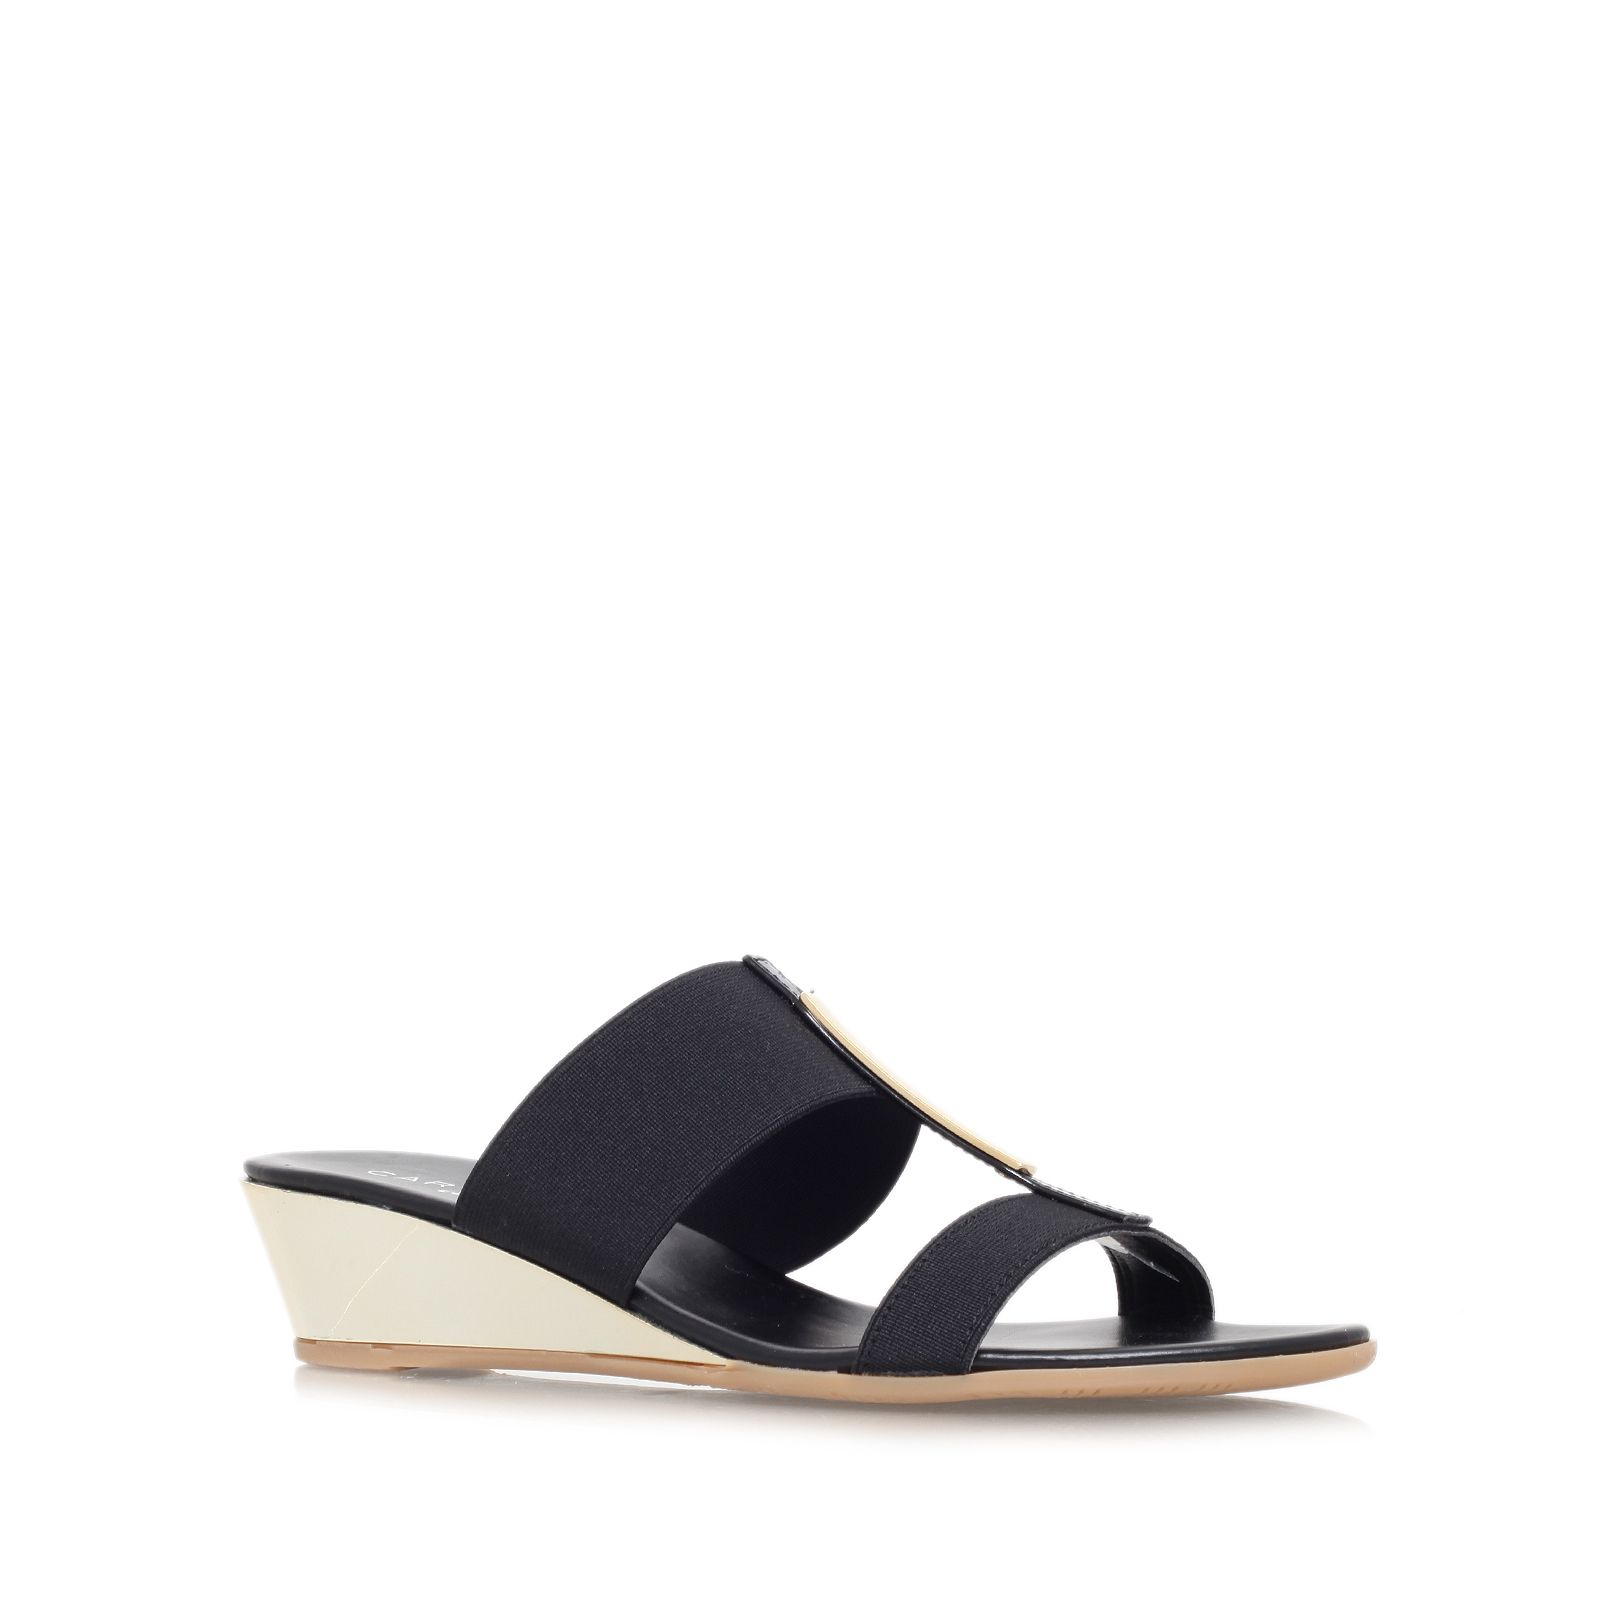 carvela kurt geiger suri low wedge heel sandals in black